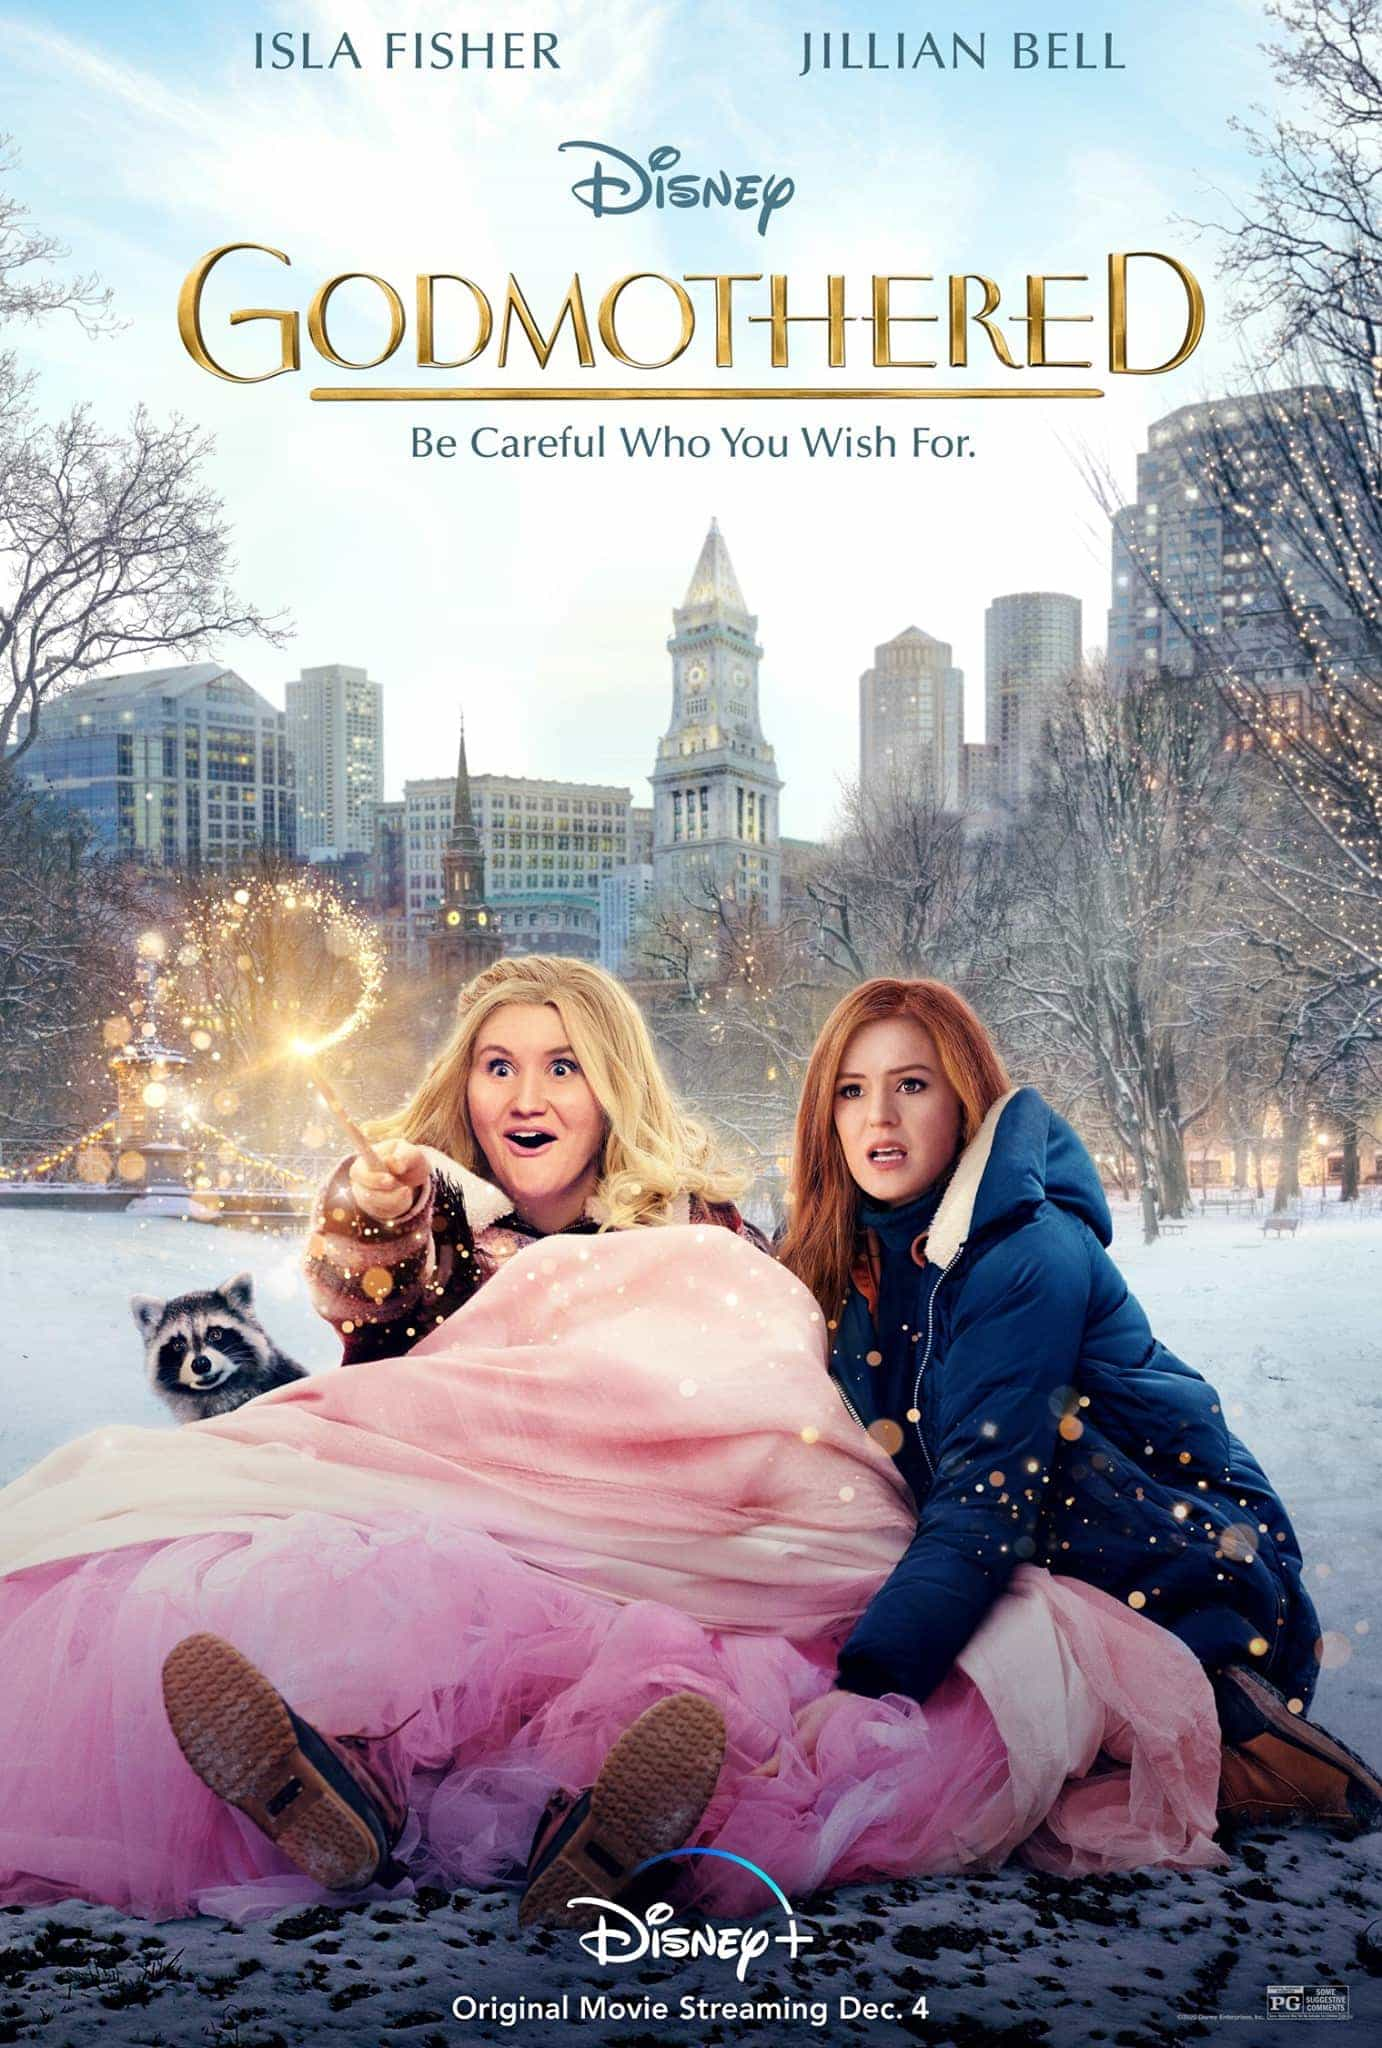 UK New Movie Preview December 3rd 2020 - Godmother makes its debut on Disney+ and a new version of A Christmas Carol hits cinemas